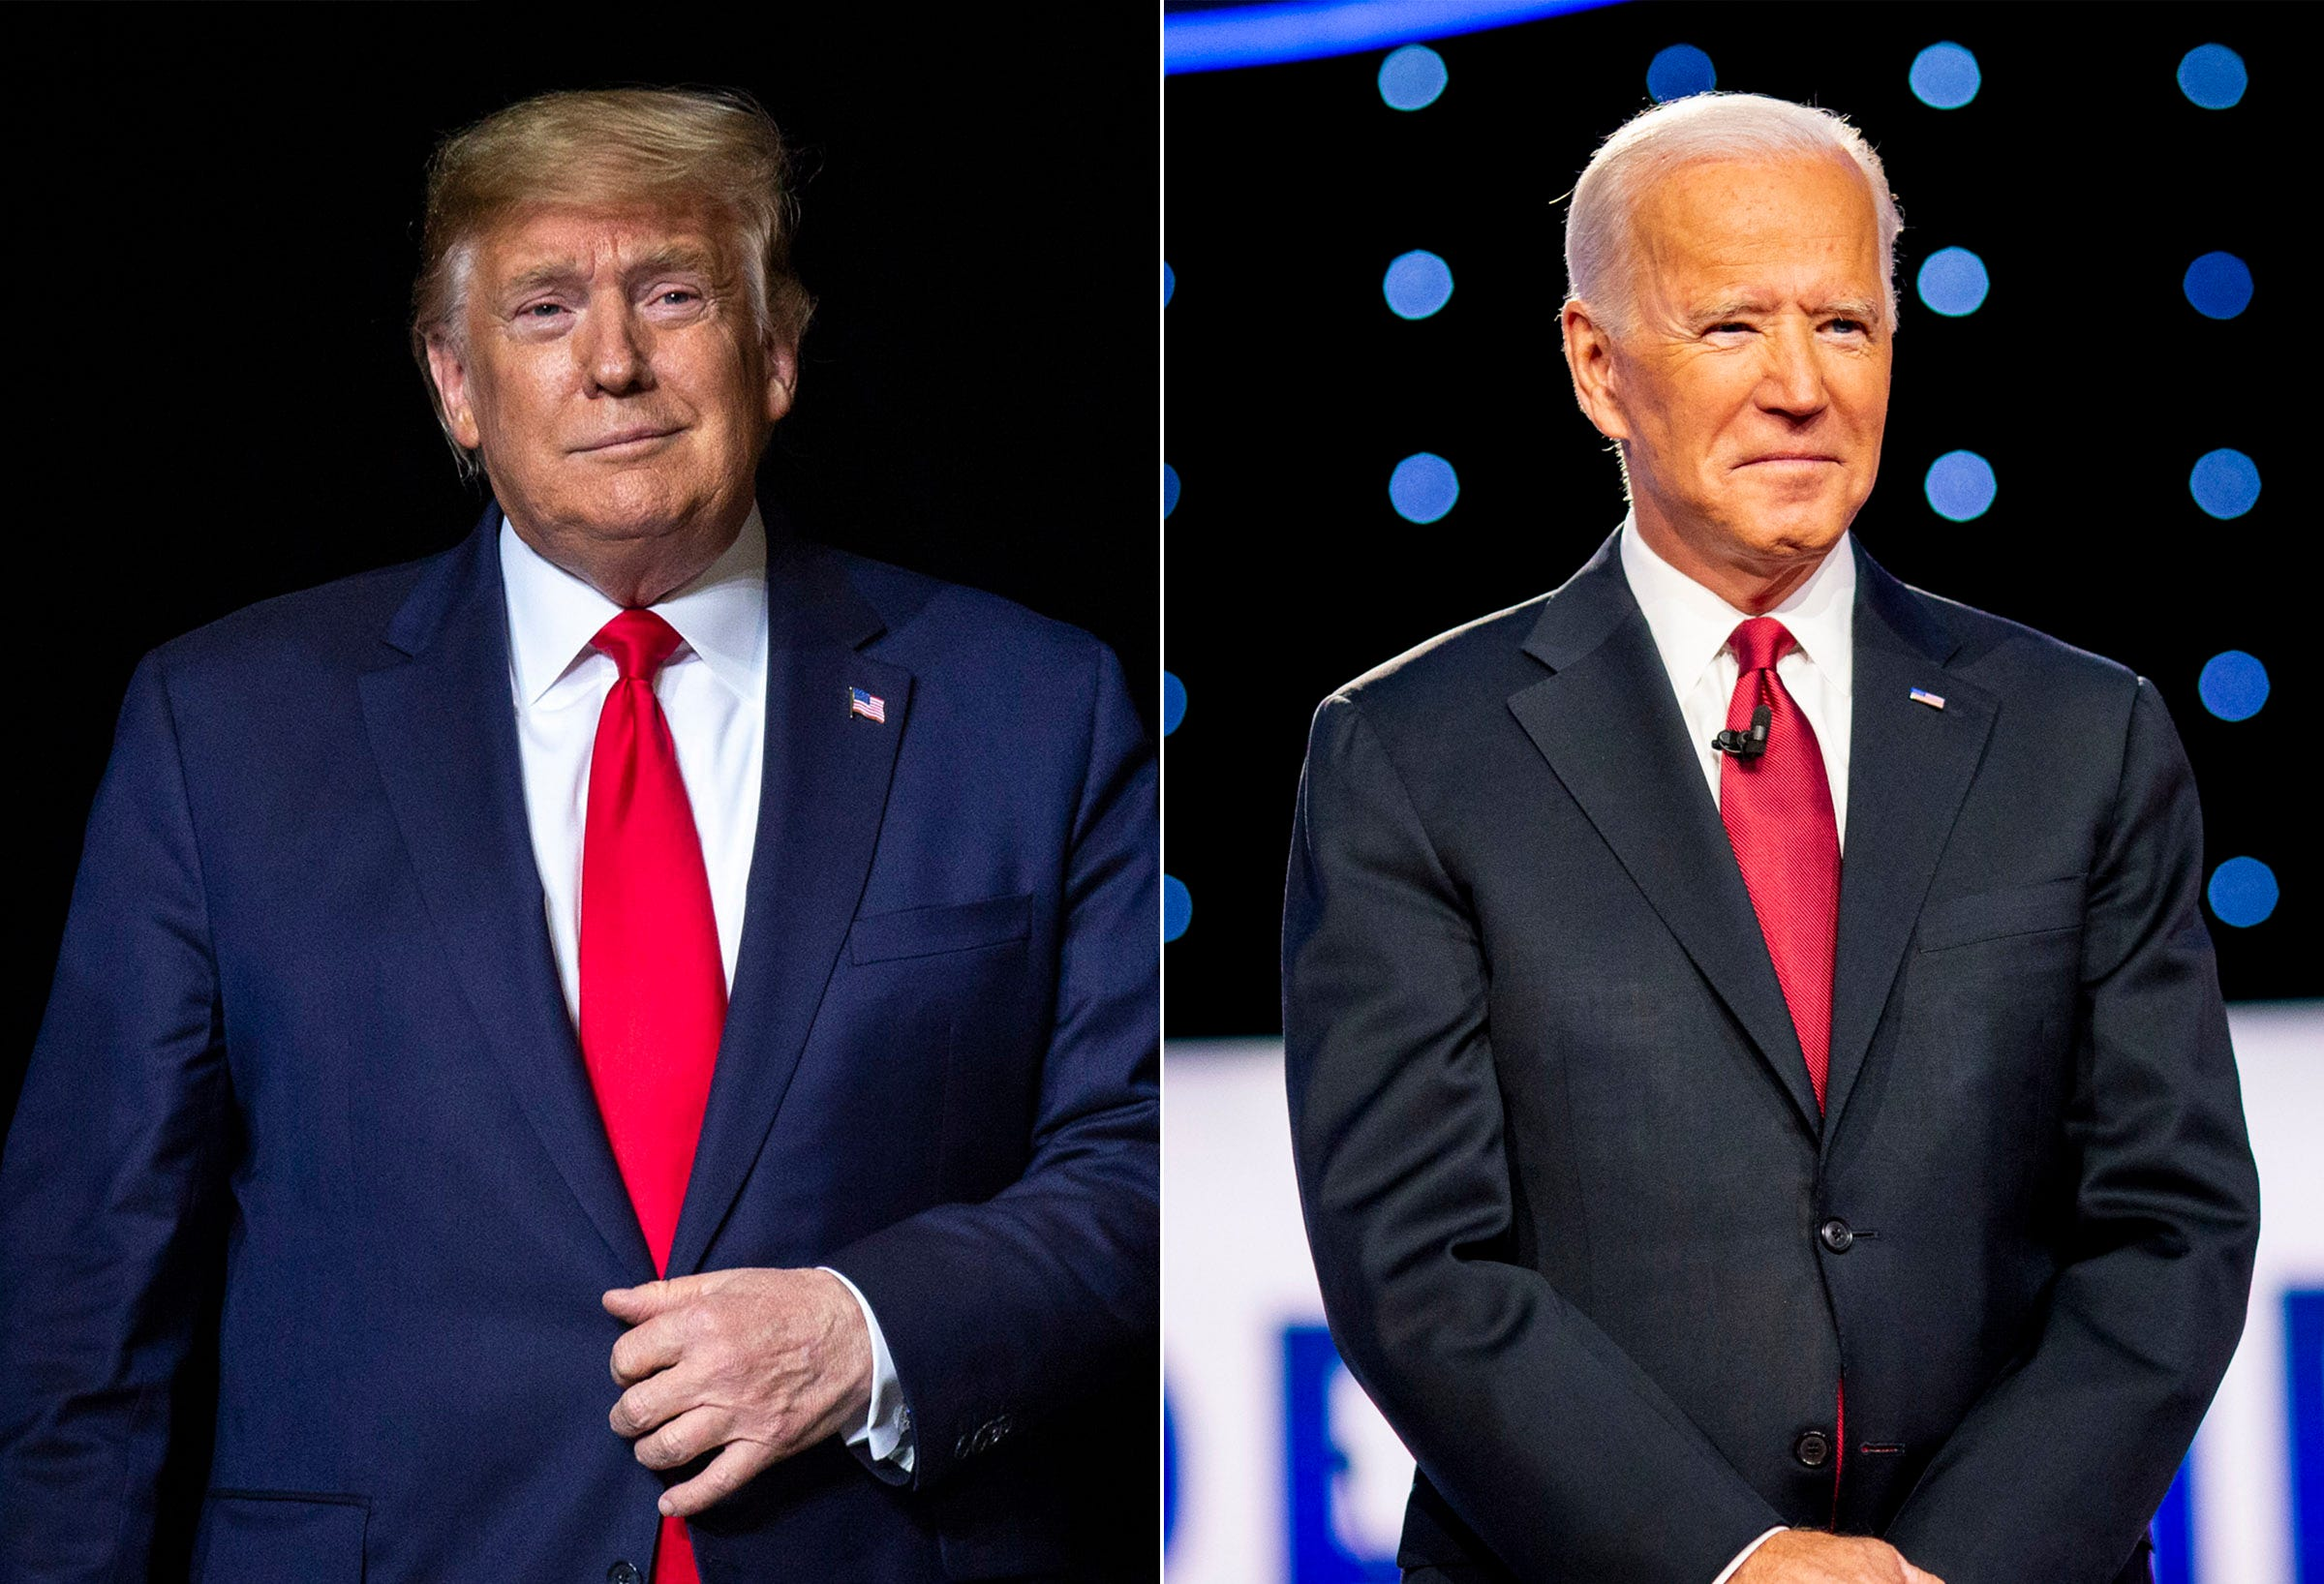 2020 election: Biden widens lead over Trump in race for White House